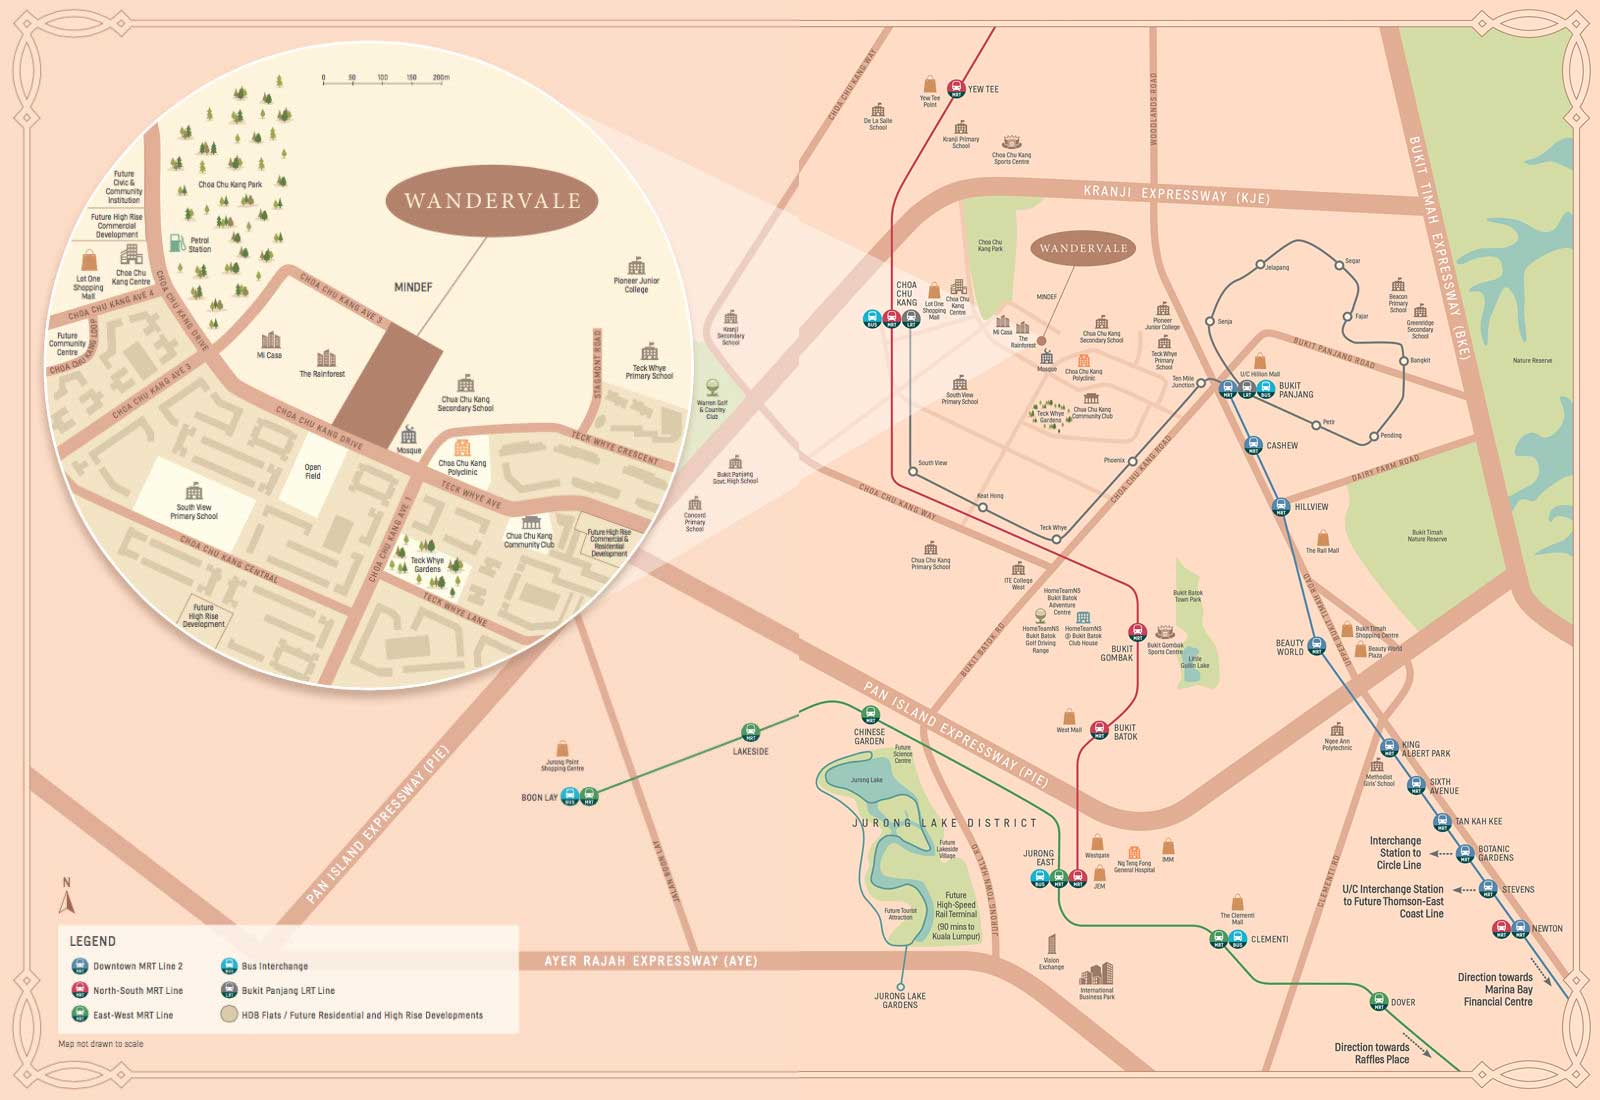 Location Map of Wandervale